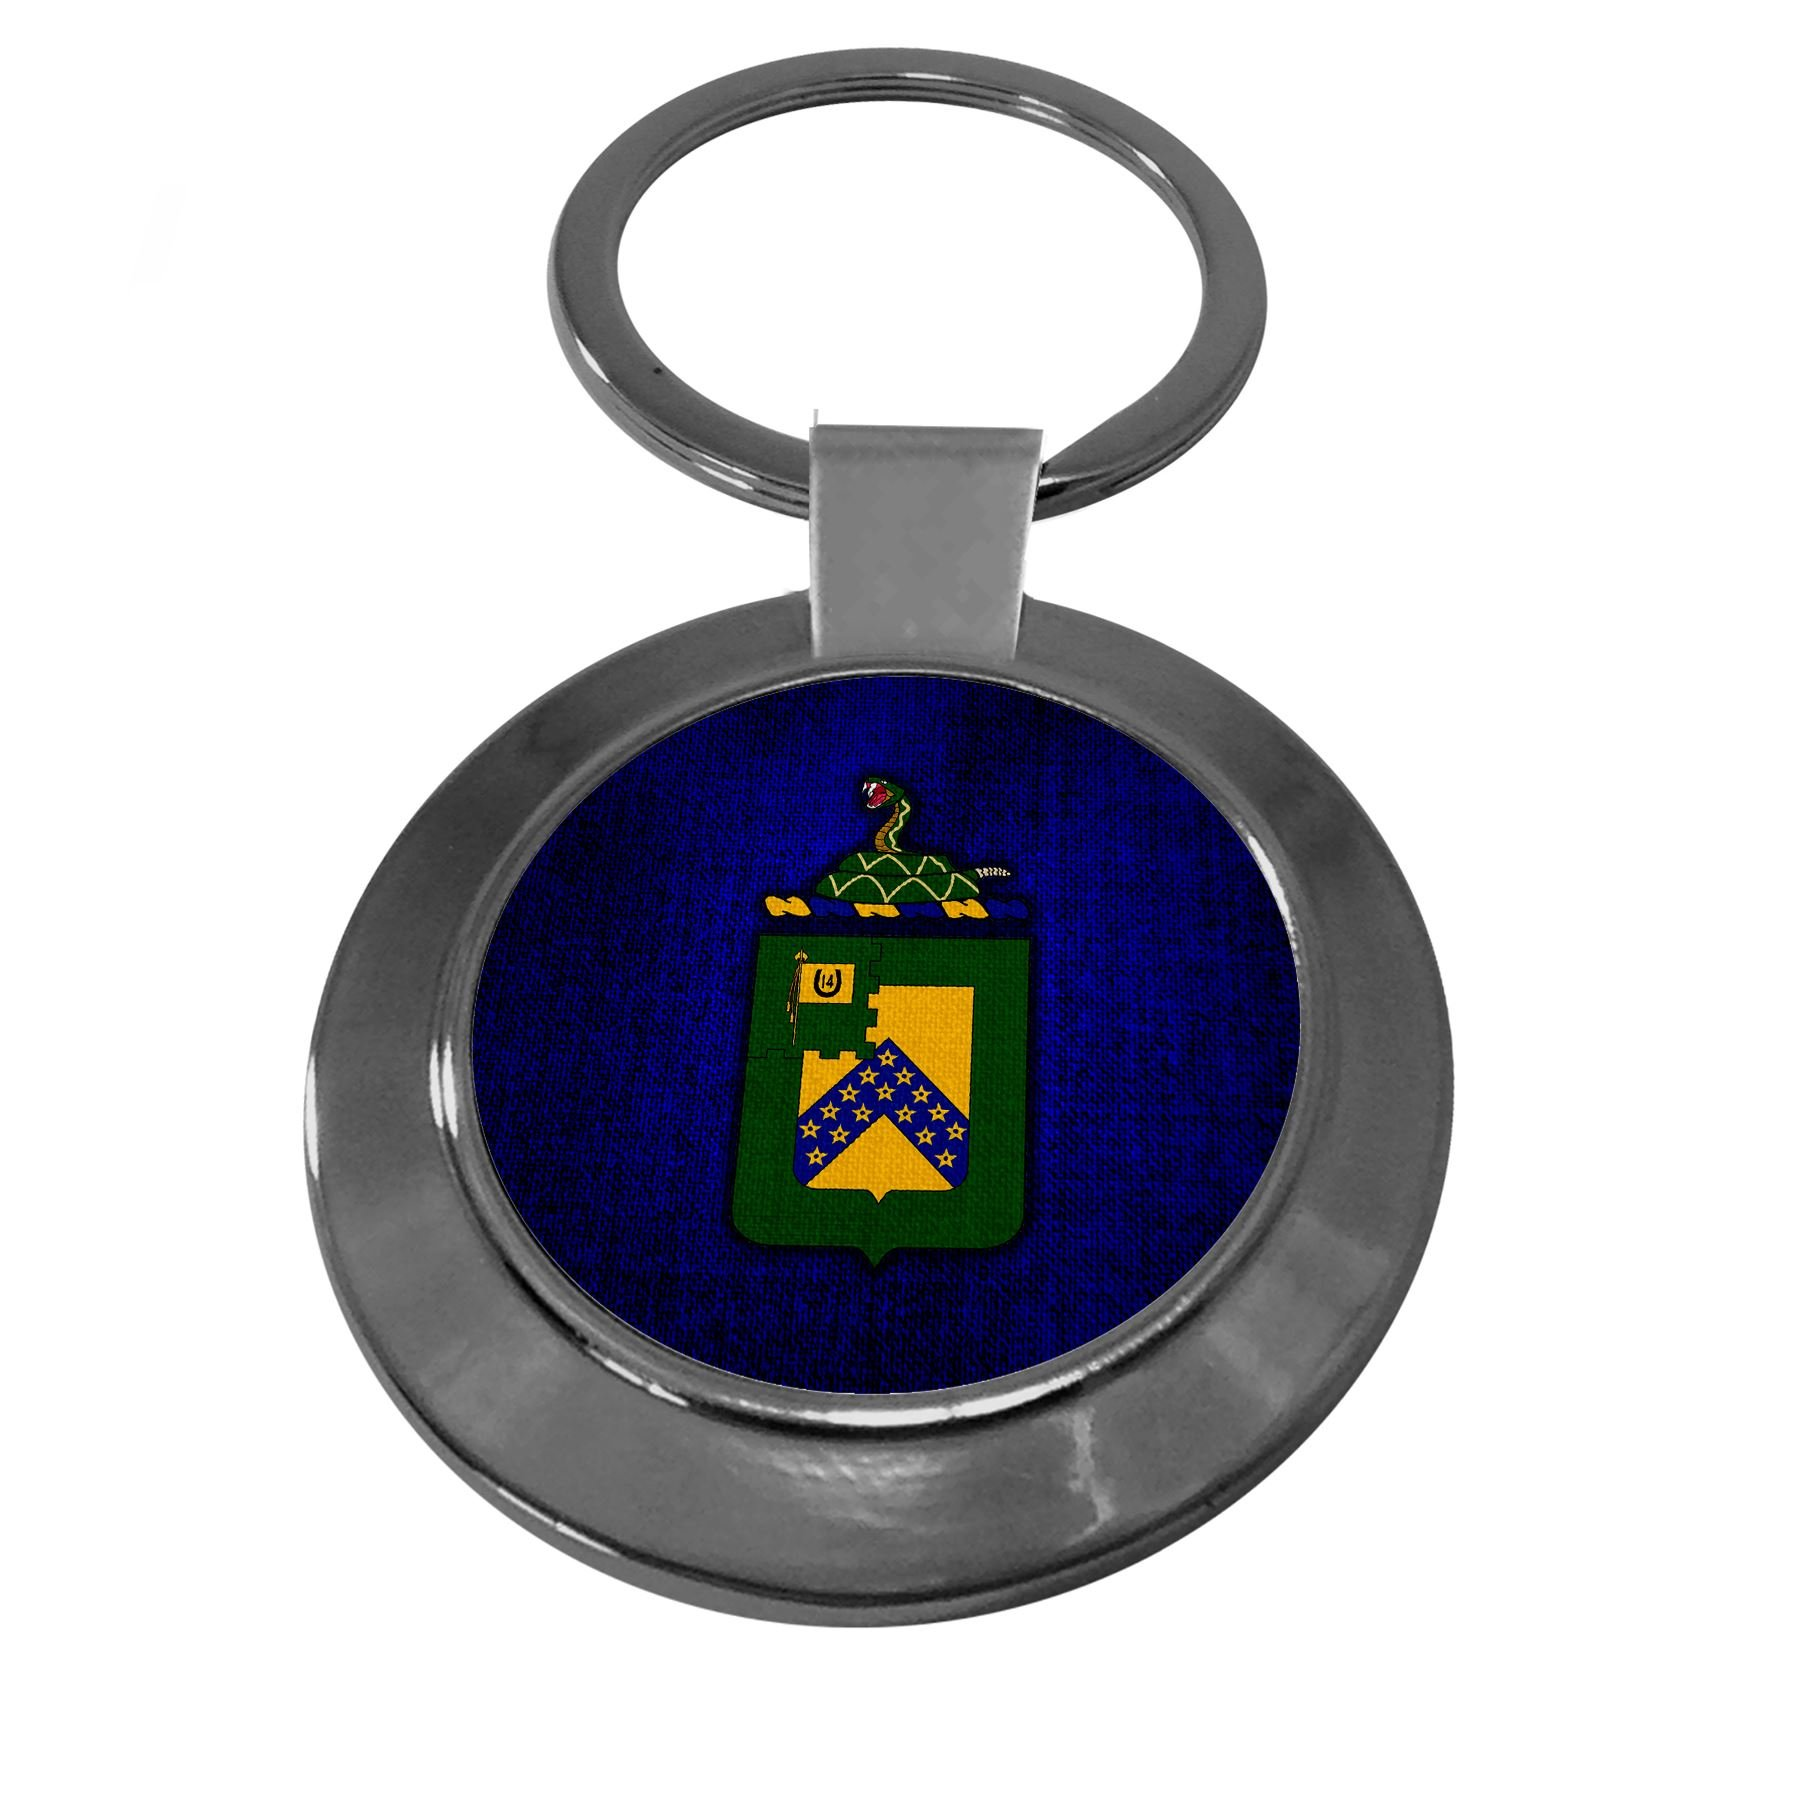 Premium Key Ring with U.S. Army 16th Cavalry Regiment, coat of arms